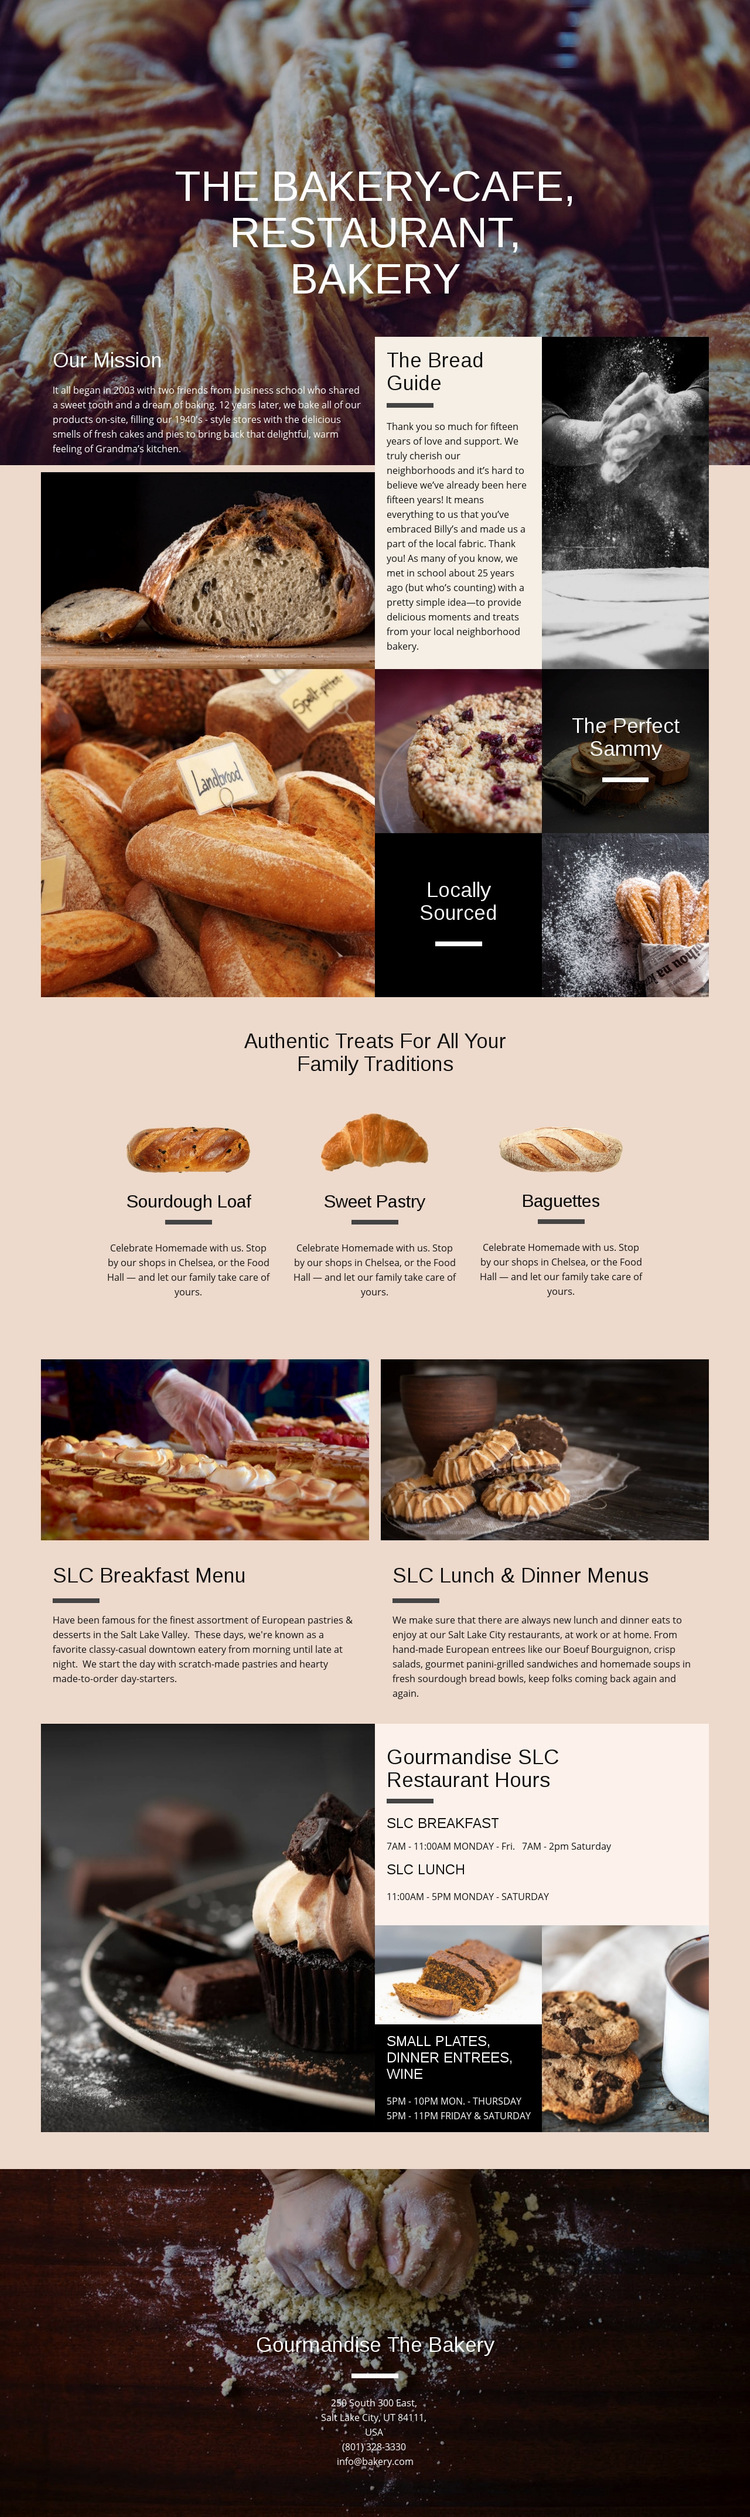 The Bakery Web Page Design